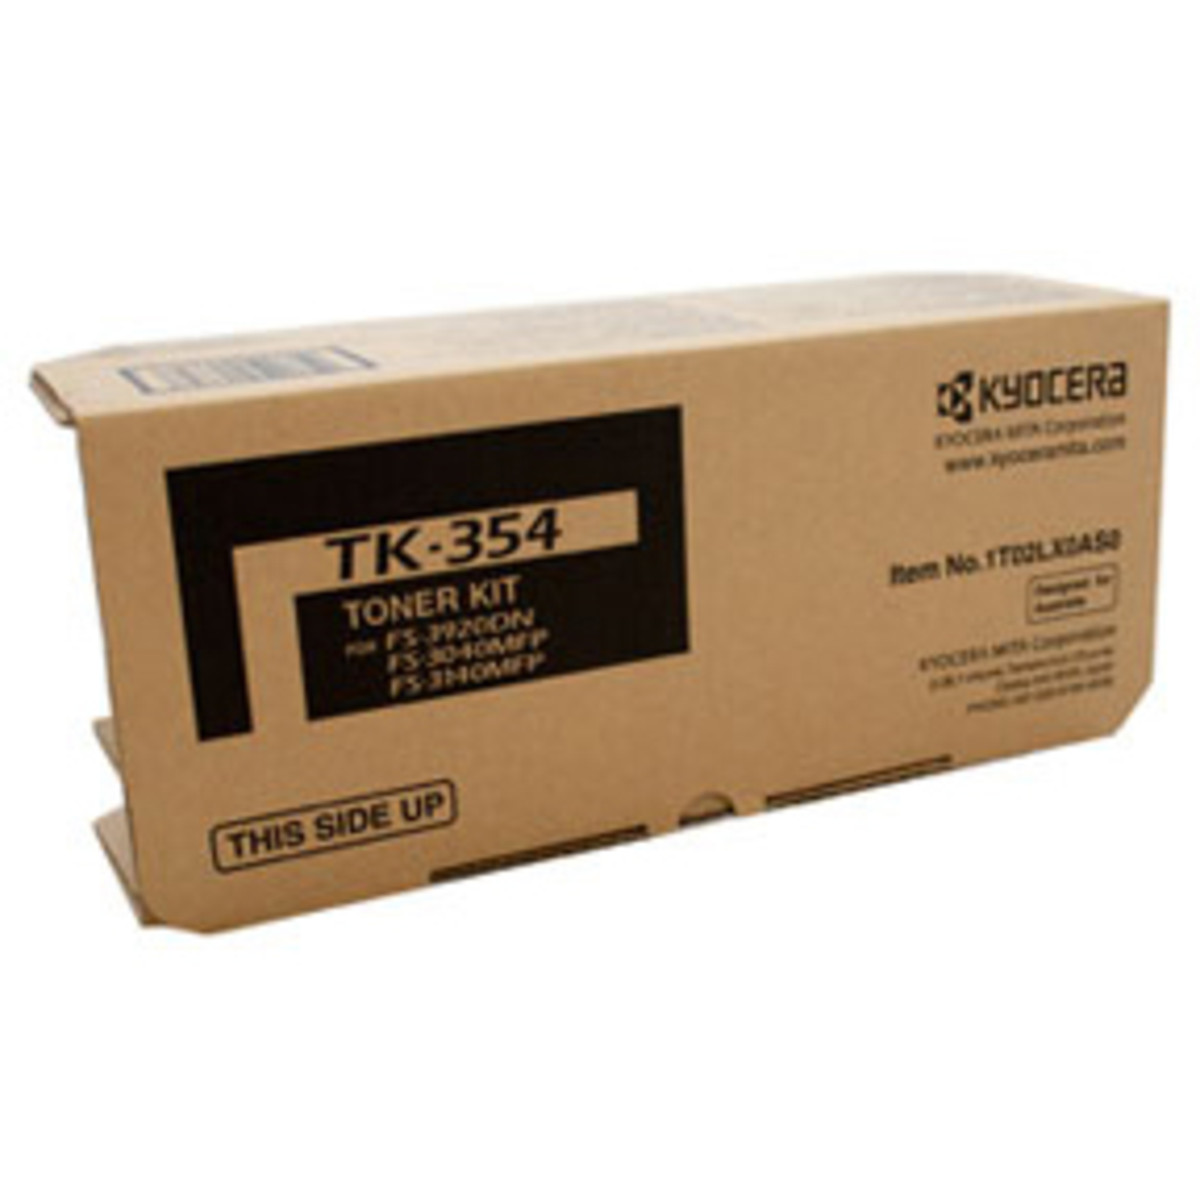 Kyocera TK-354 Black Toner Cartridge